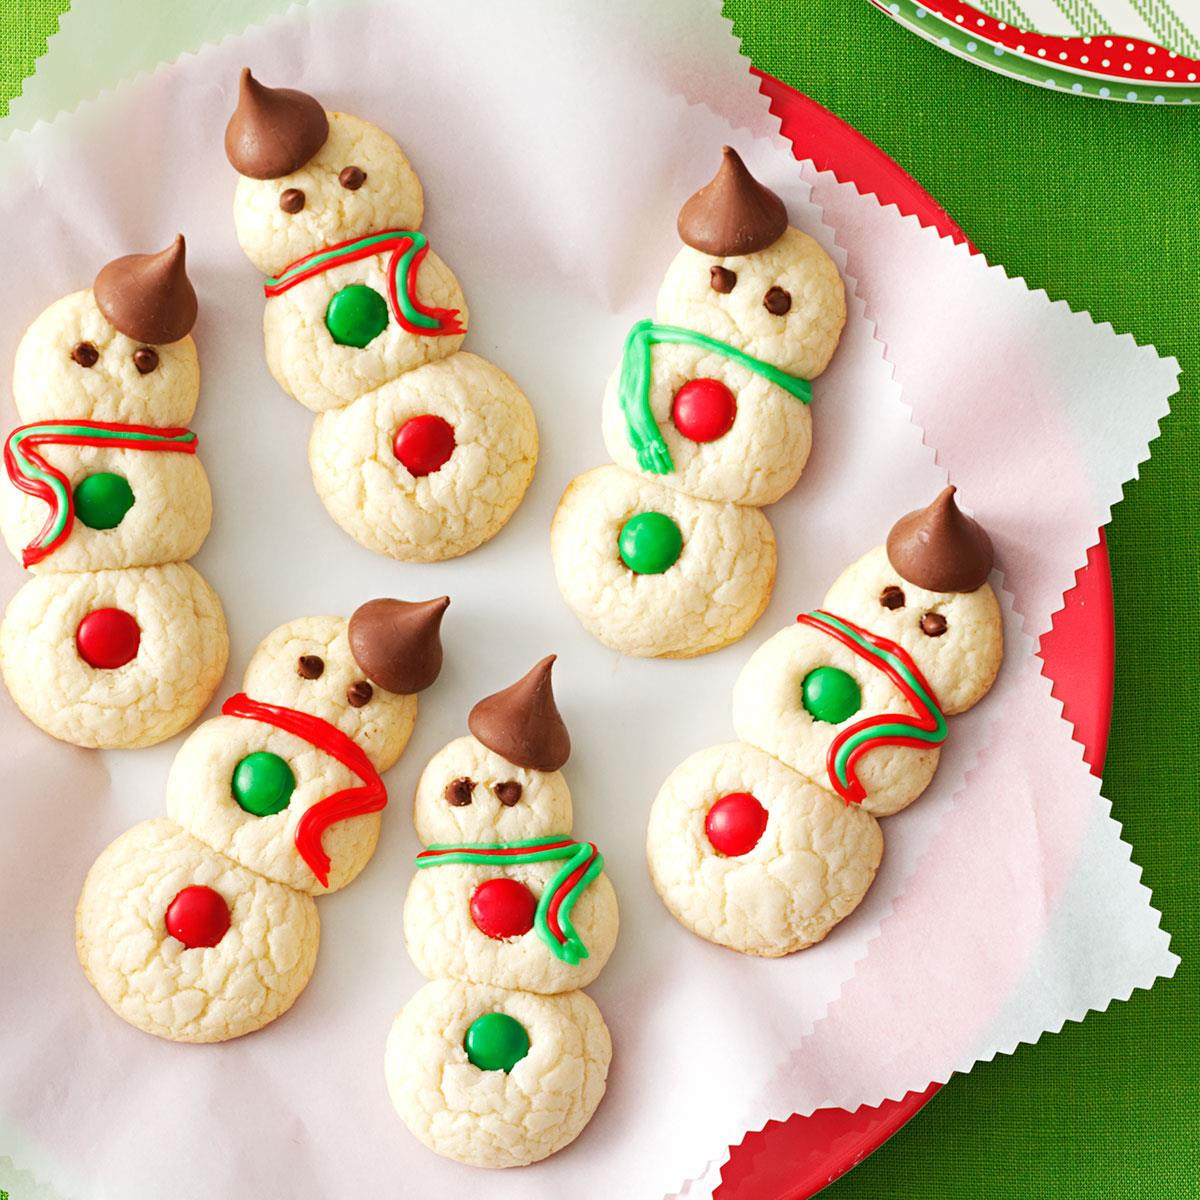 21 Ideas For Cute Christmas Baking Ideas Best Diet And Healthy Recipes Ever Recipes Collection